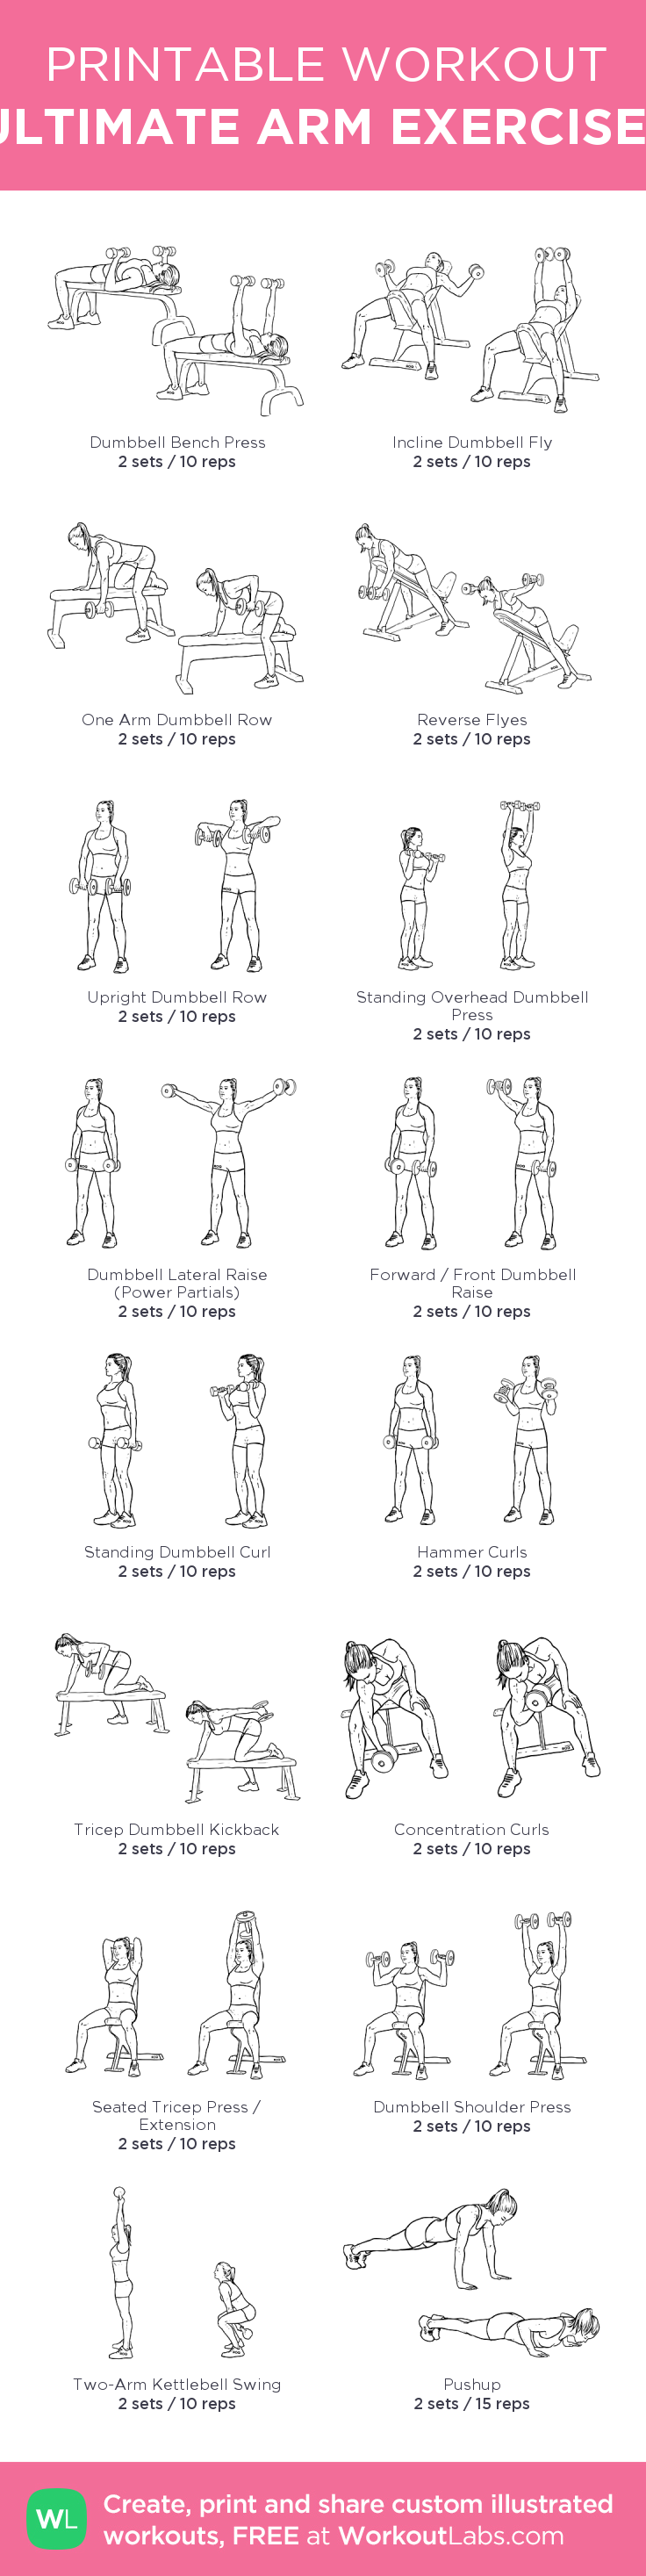 ULTIMATE ARM EXERCISES: my custom printable workout by @WorkoutLabs